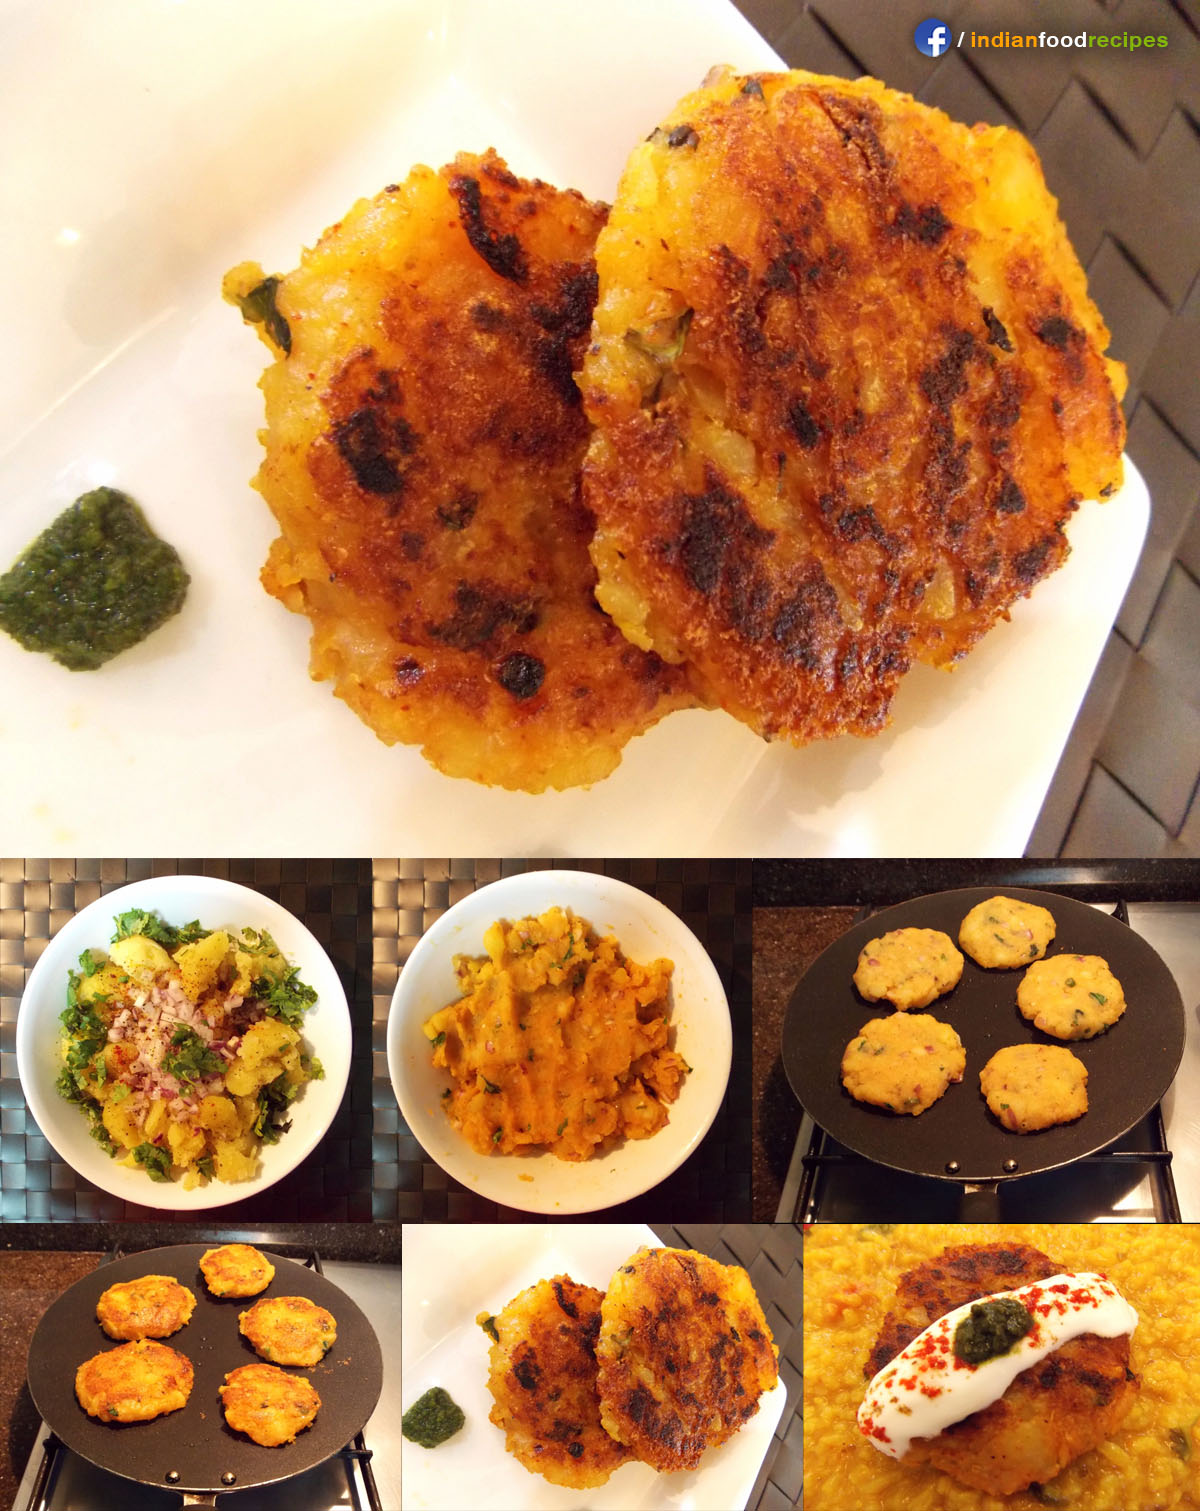 Alu Tikki (Spiced Potato Patties) recipe step by step